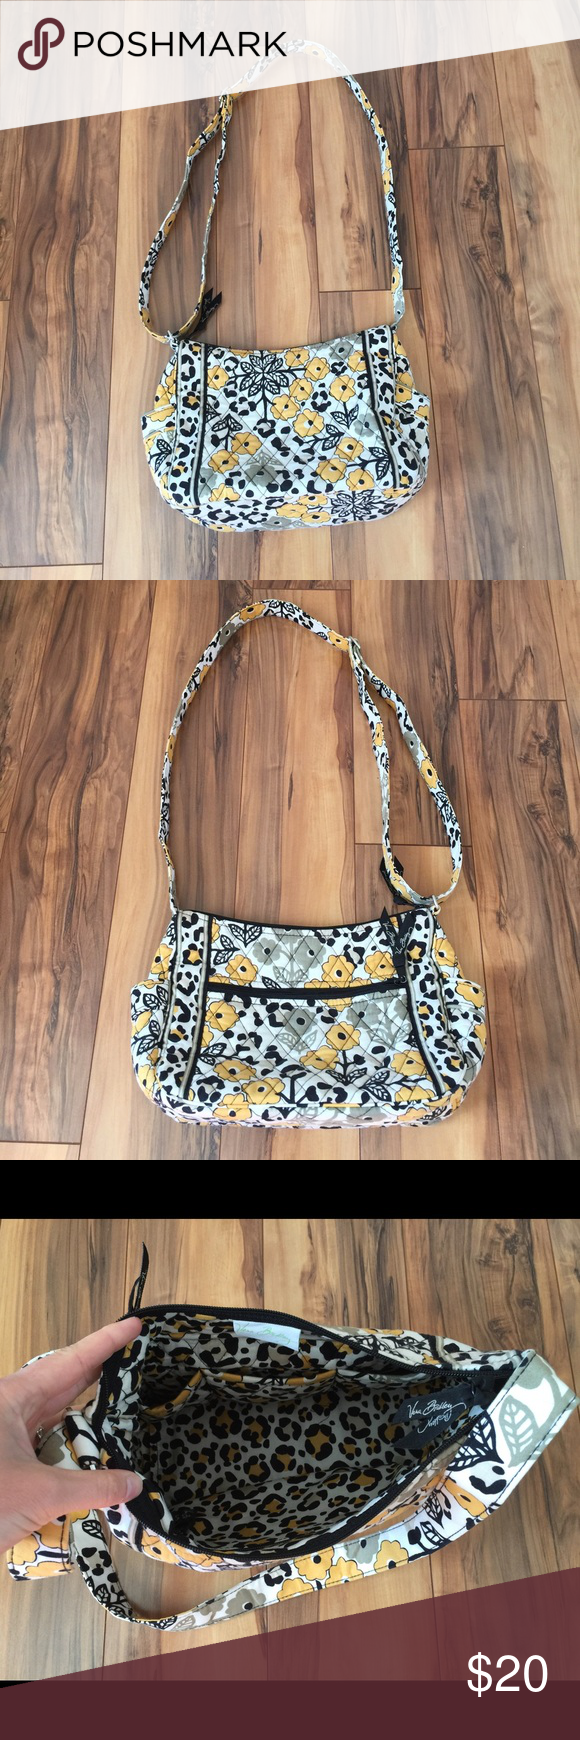 "Vera Bradley Go Wild Crossbody Bag Vera Bradley Crossbody Bag in retired Go Wild pattern. This bag was used one time and is like new! Strap can be adjusted to be a Crossbody strap or a shoulder bag. Outside of bag has 2 side open pockets and 1 large zip pocket. Zip top closure. Inside has 3 open pockets and 1 zip pocket. Bag measures 12"" X 8"". Vera Bradley Bags"